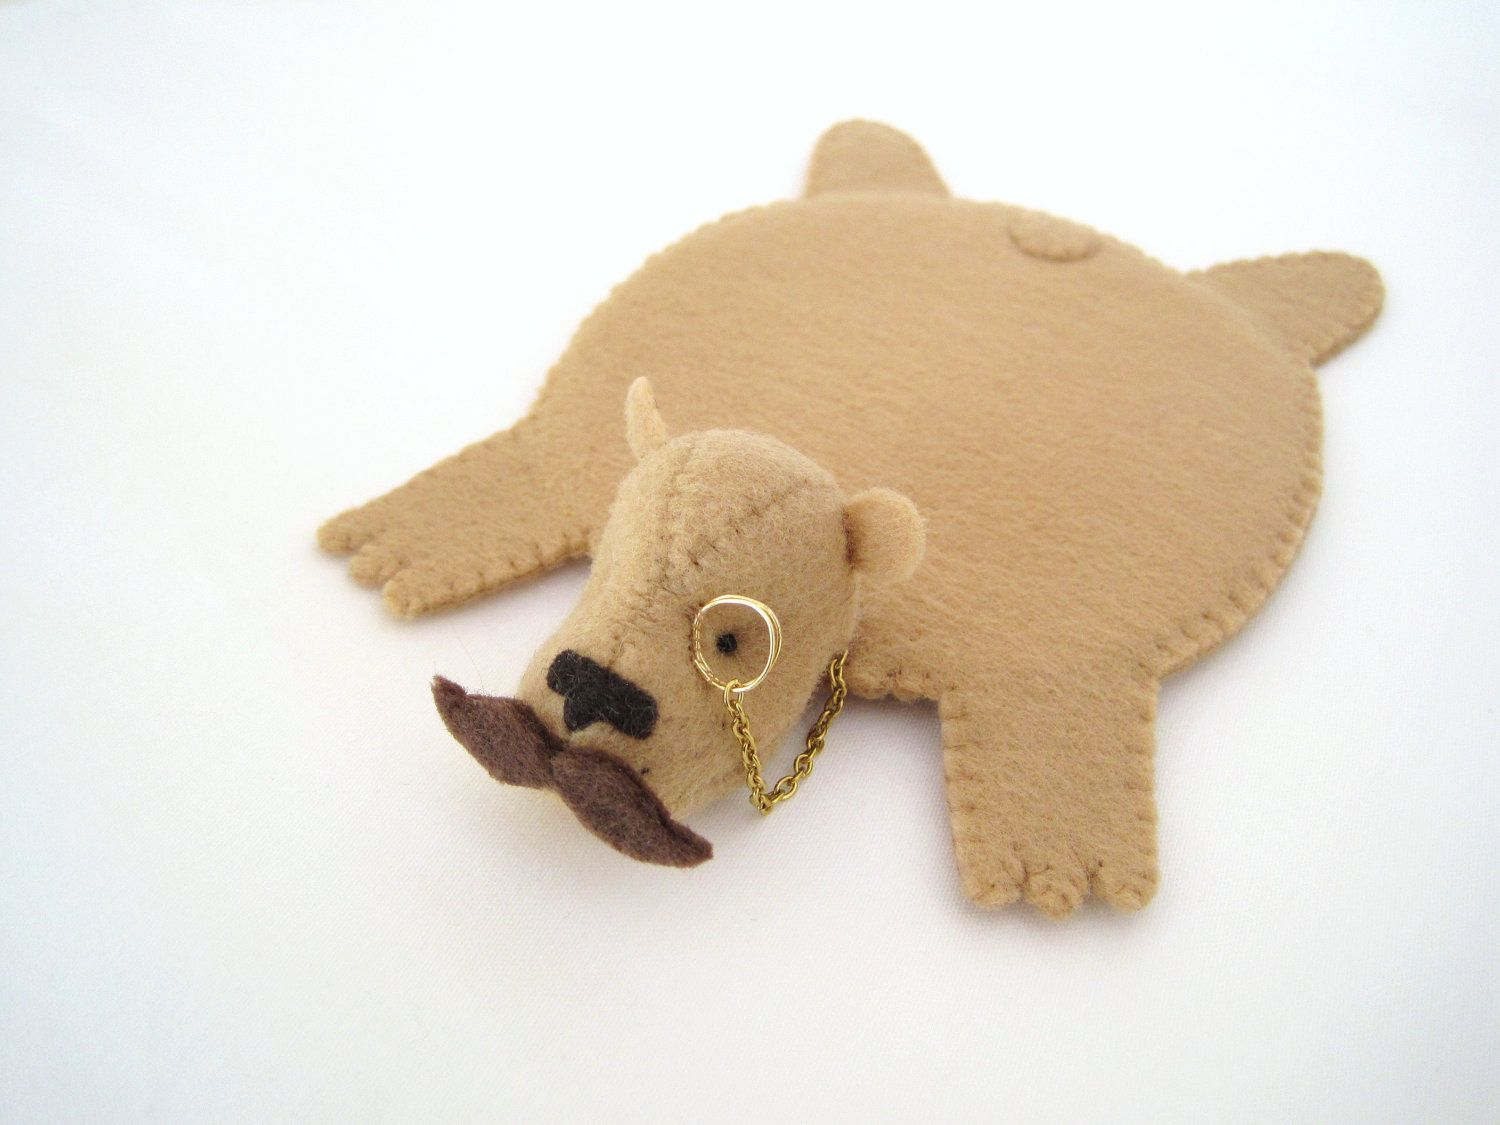 Monocled Mustache Bear Rug Coaster by dandyrions on Etsy, via Etsy.